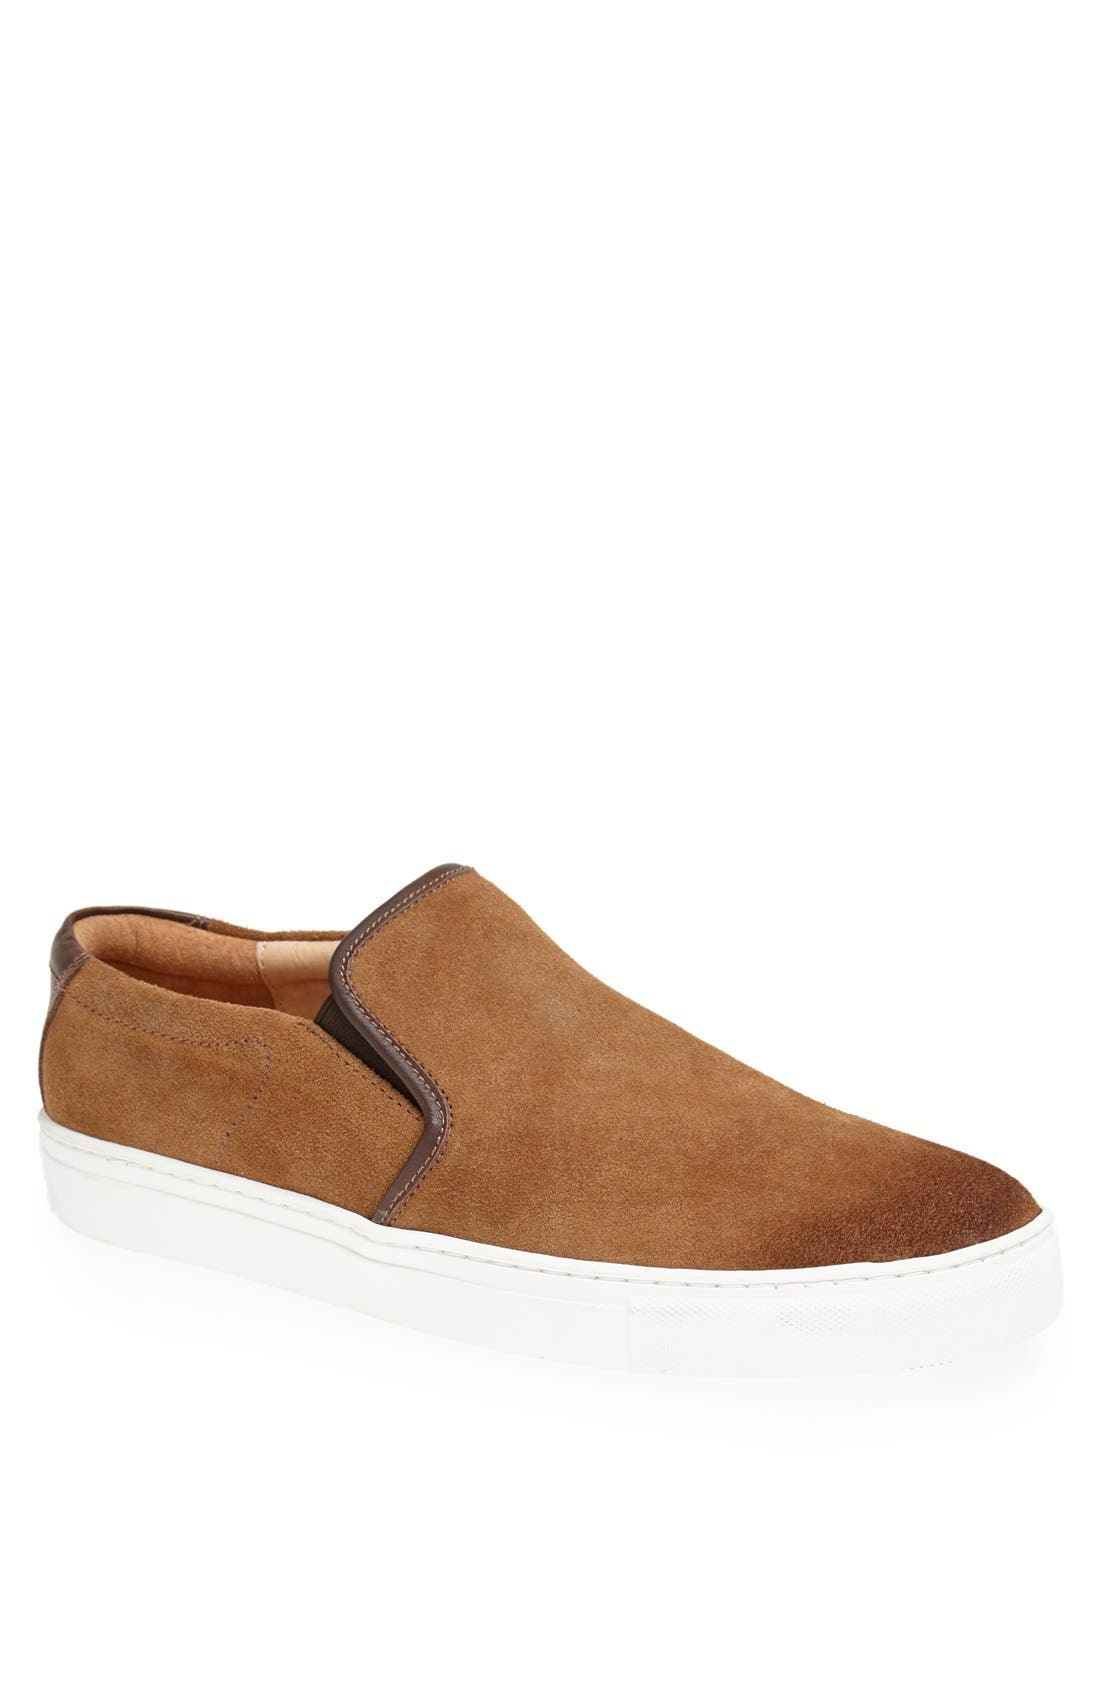 jd clearance shoes